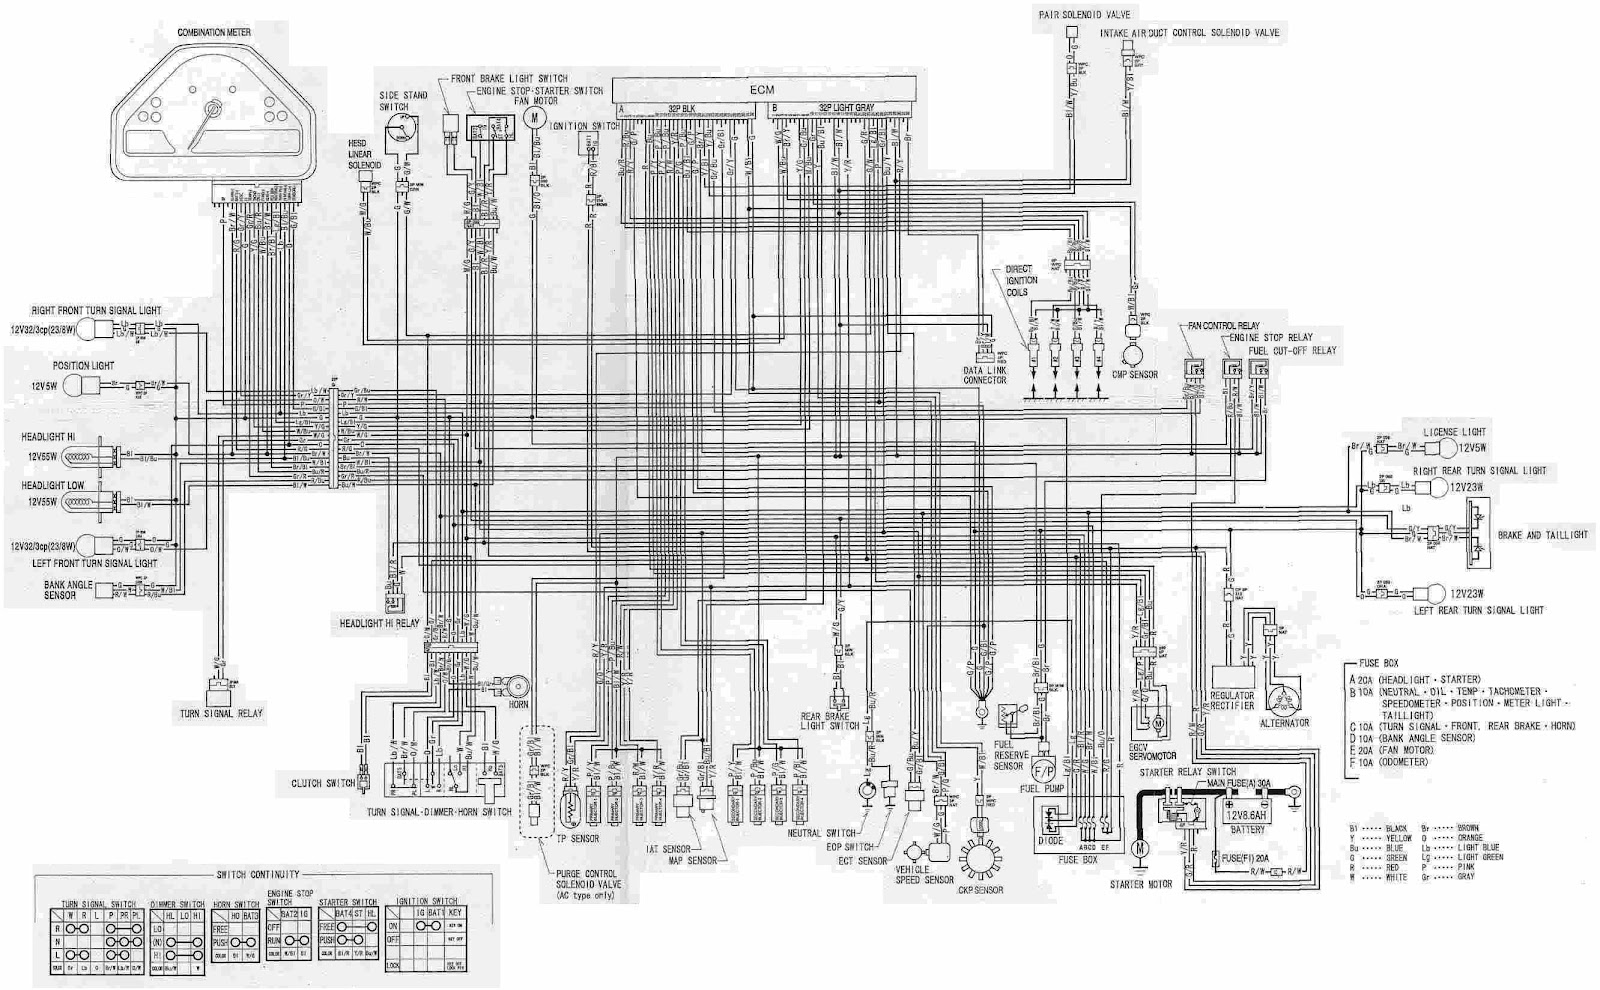 Honda CBR1000RR Motorcycle Wiring Diagram | All about Wiring Diagrams